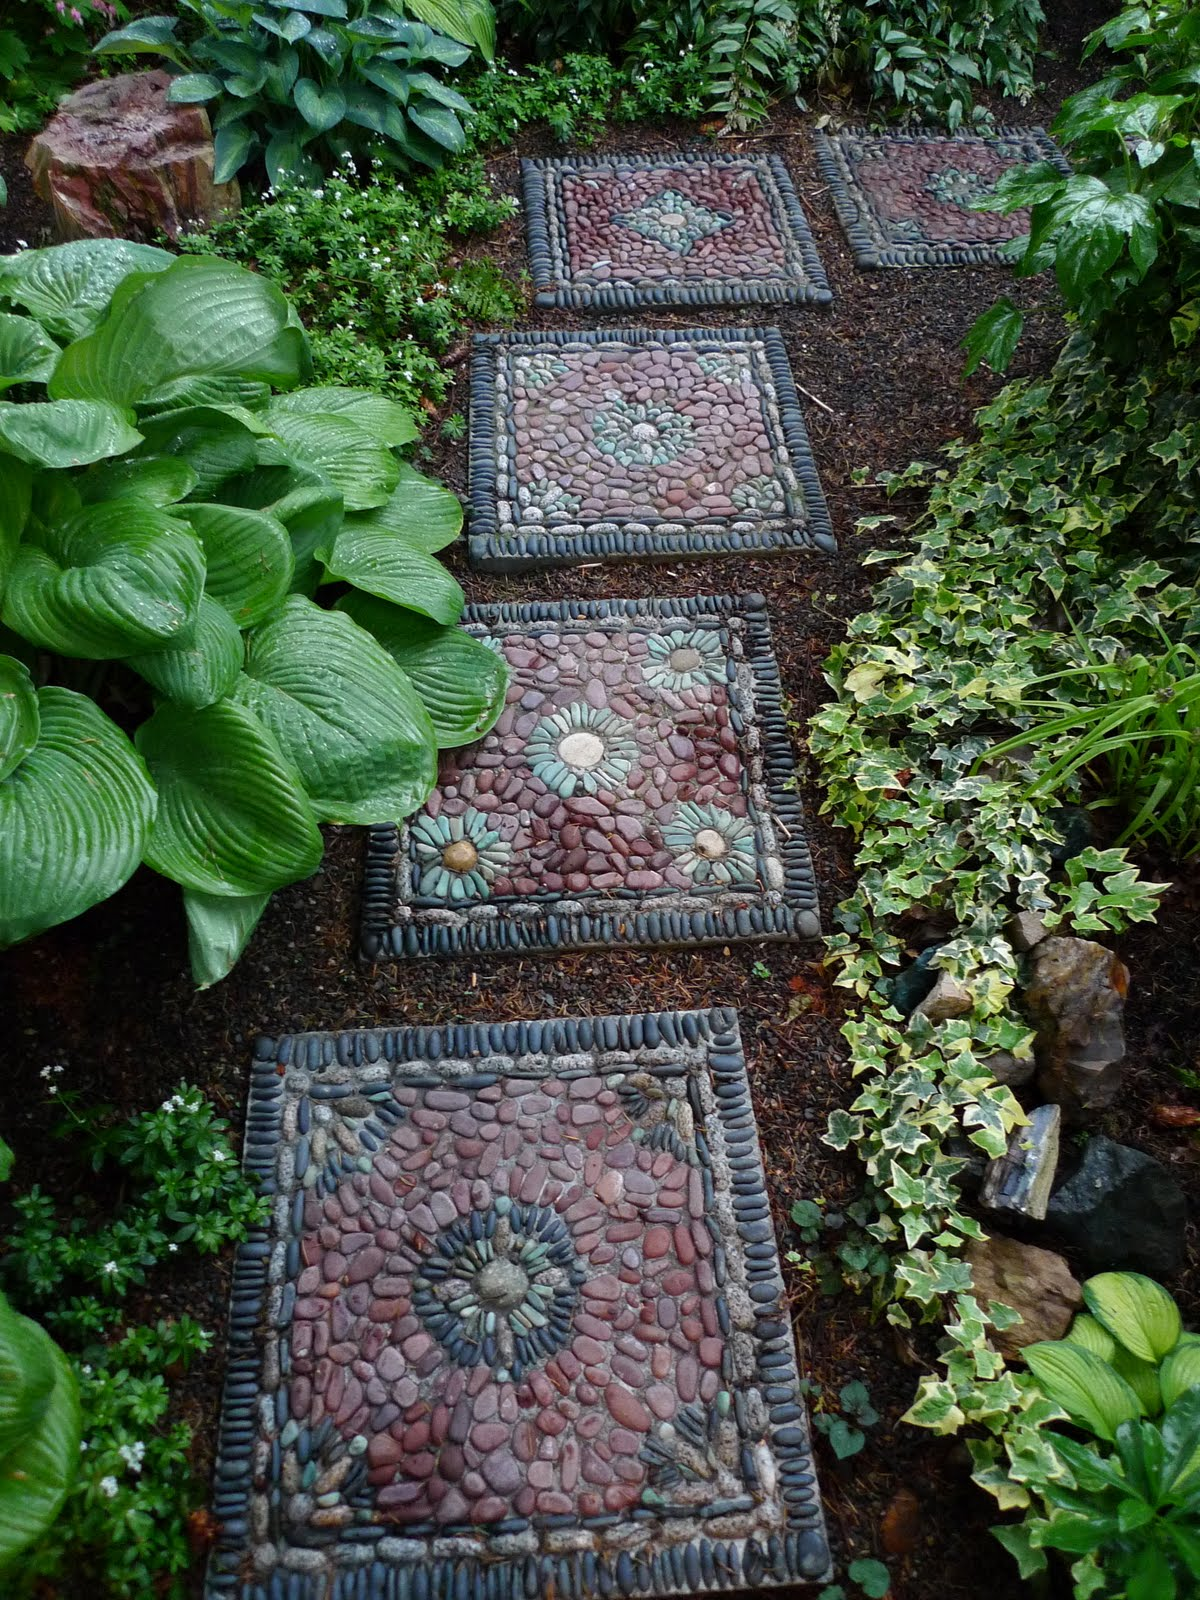 30 Beautiful DIY Stepping Stone Ideas to Decorate Garden ... on Stepping Stone Patio Ideas id=54327